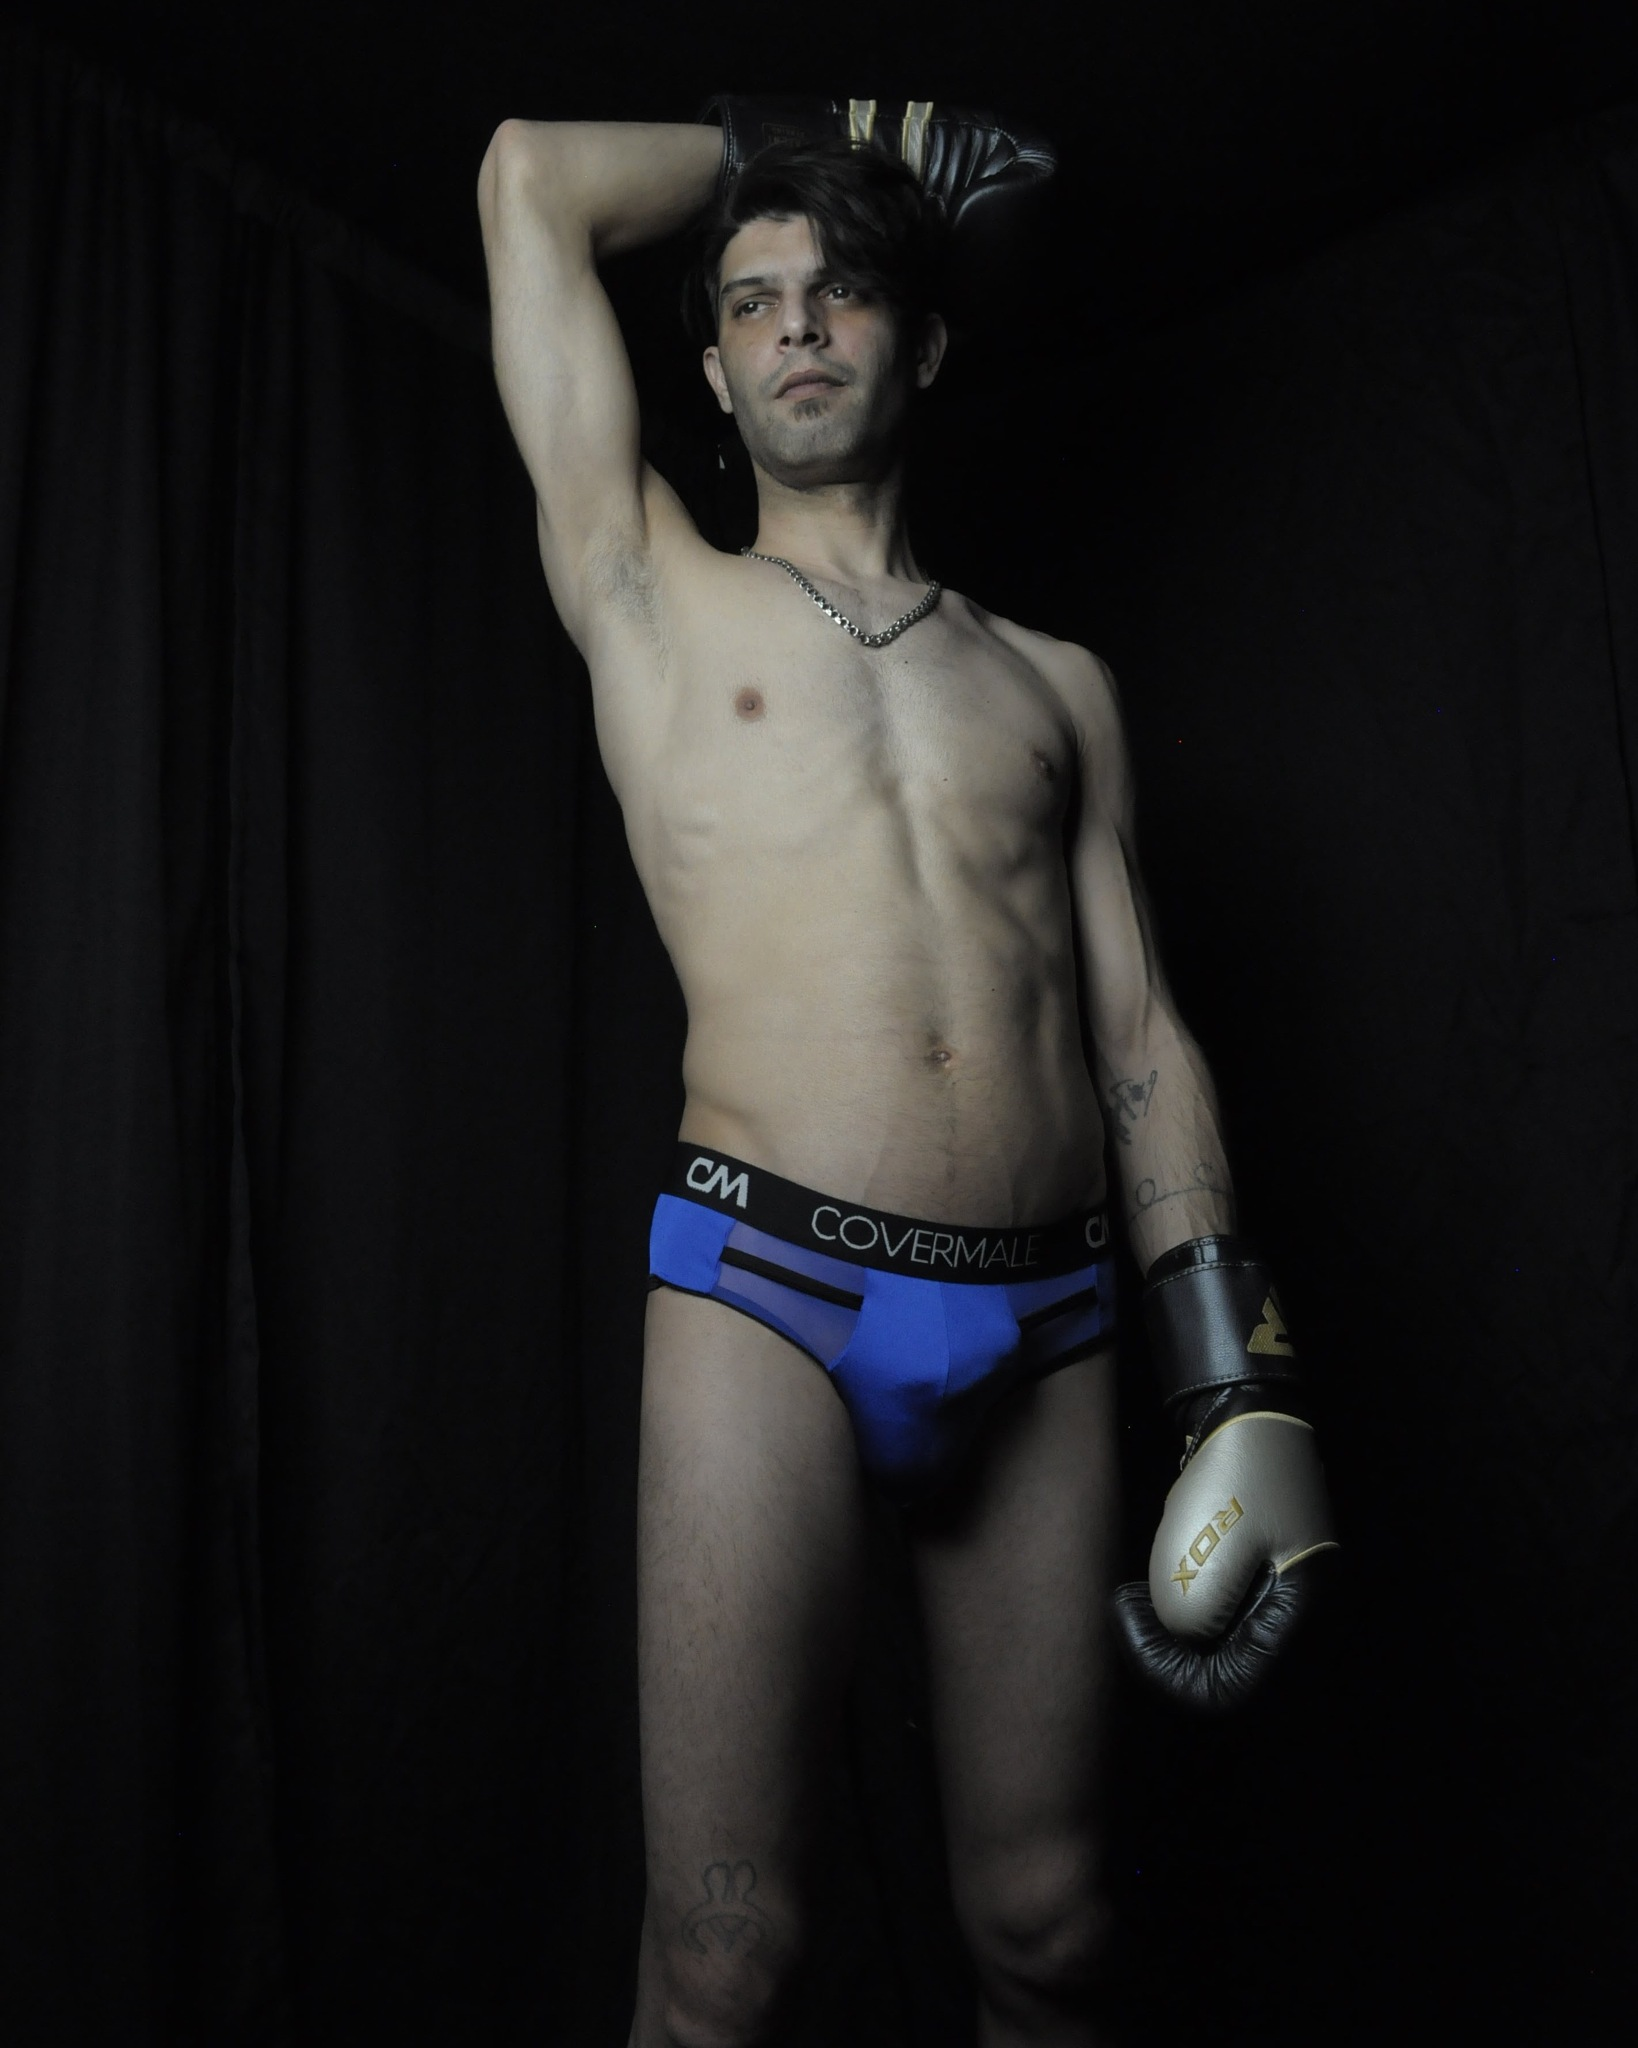 boxing shoot by caleb Schlief